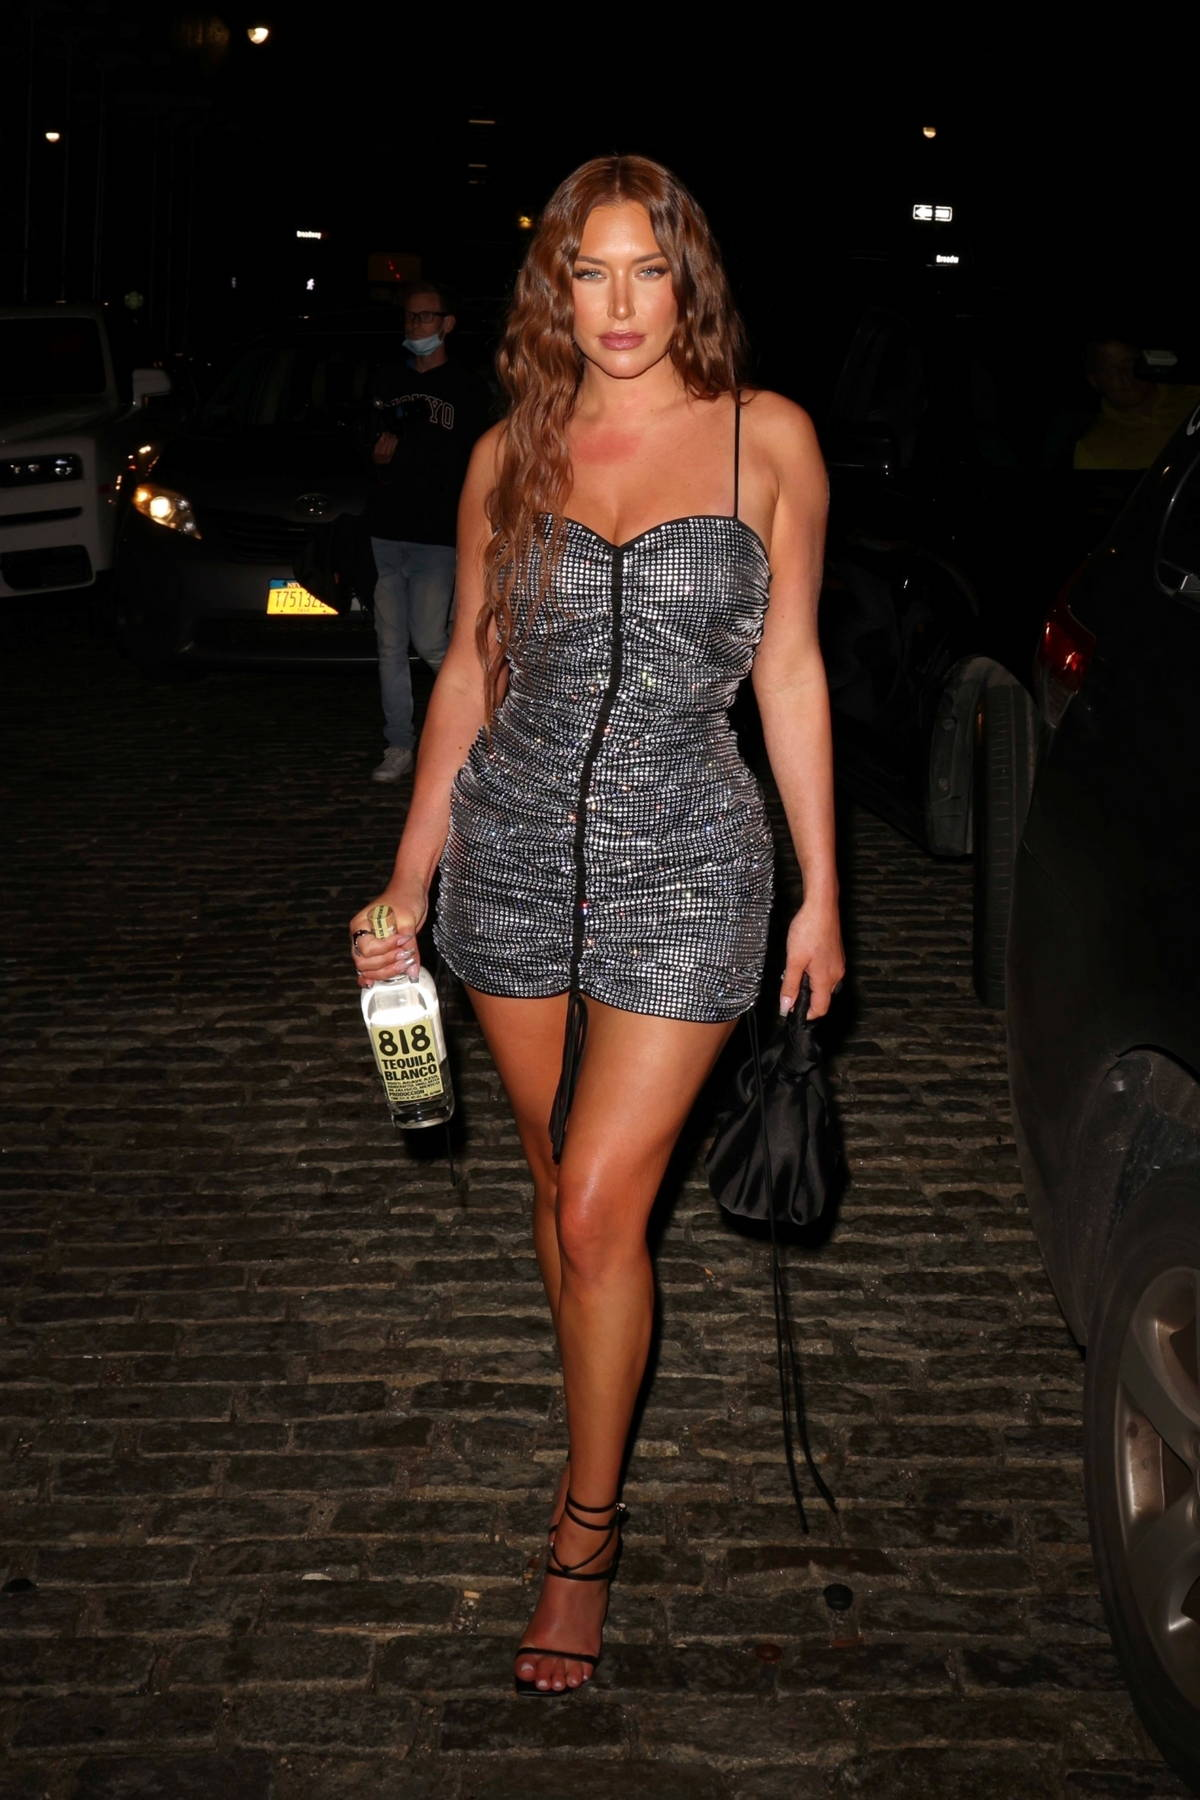 Anastasia Karanikolaou dazzles in a sparkly silver mini dress during a night out with friends in New York City